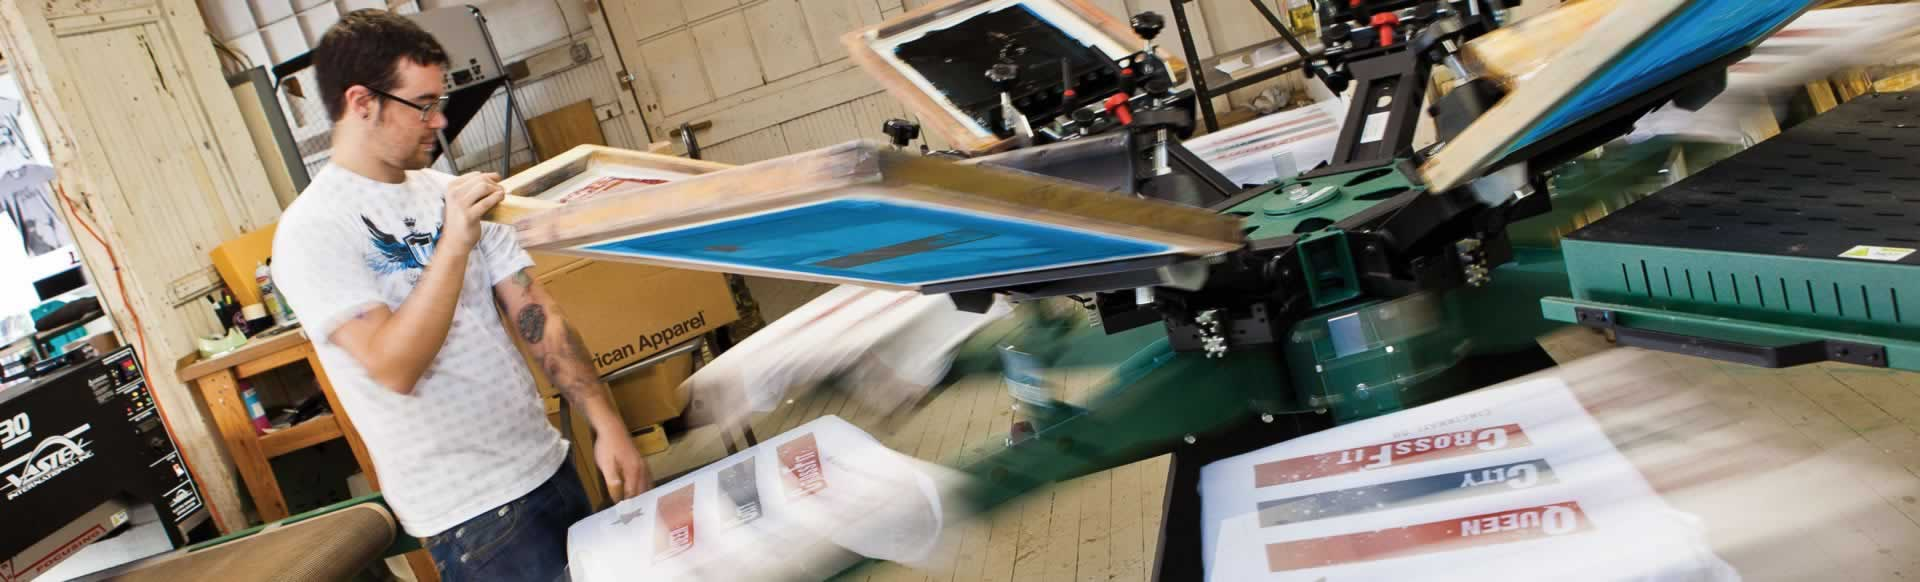 Social Media Savvy Screen Printer Growing 30 Percent Per Year